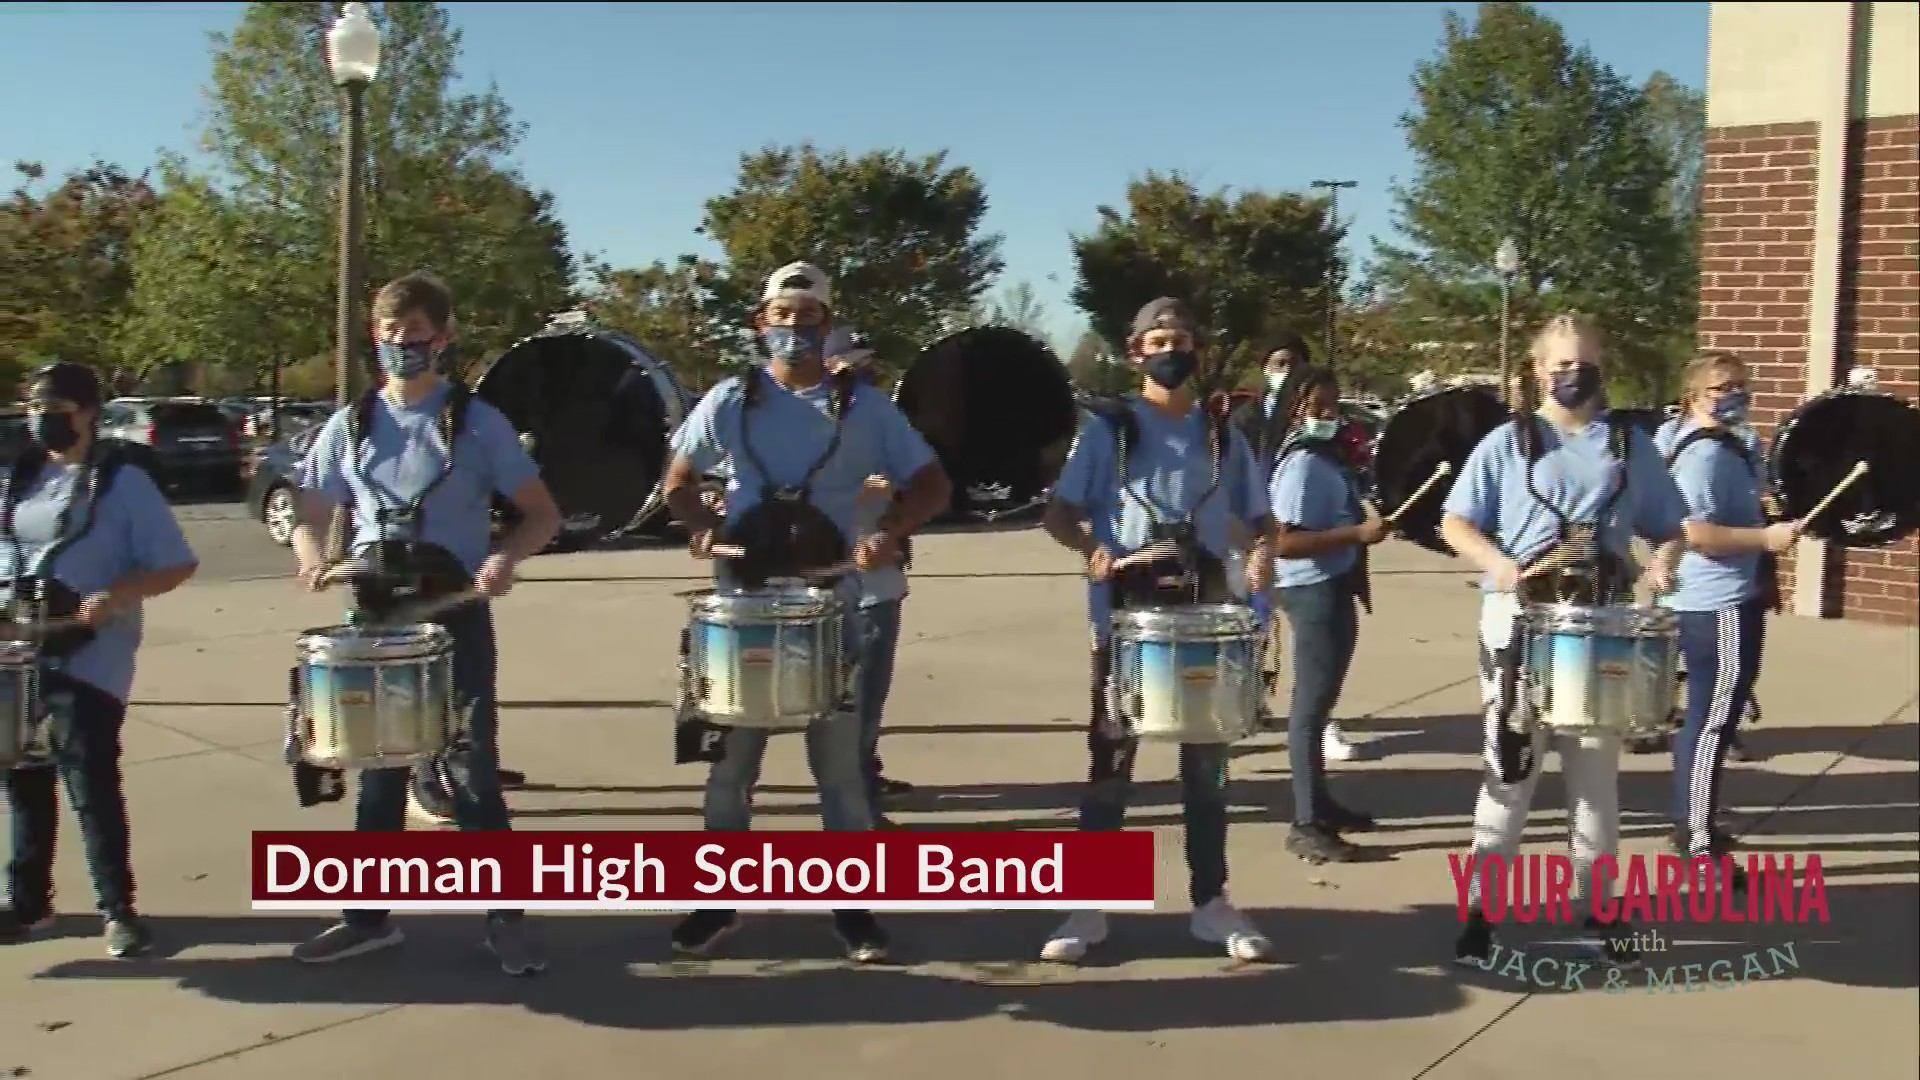 Meet Dorman High School Band